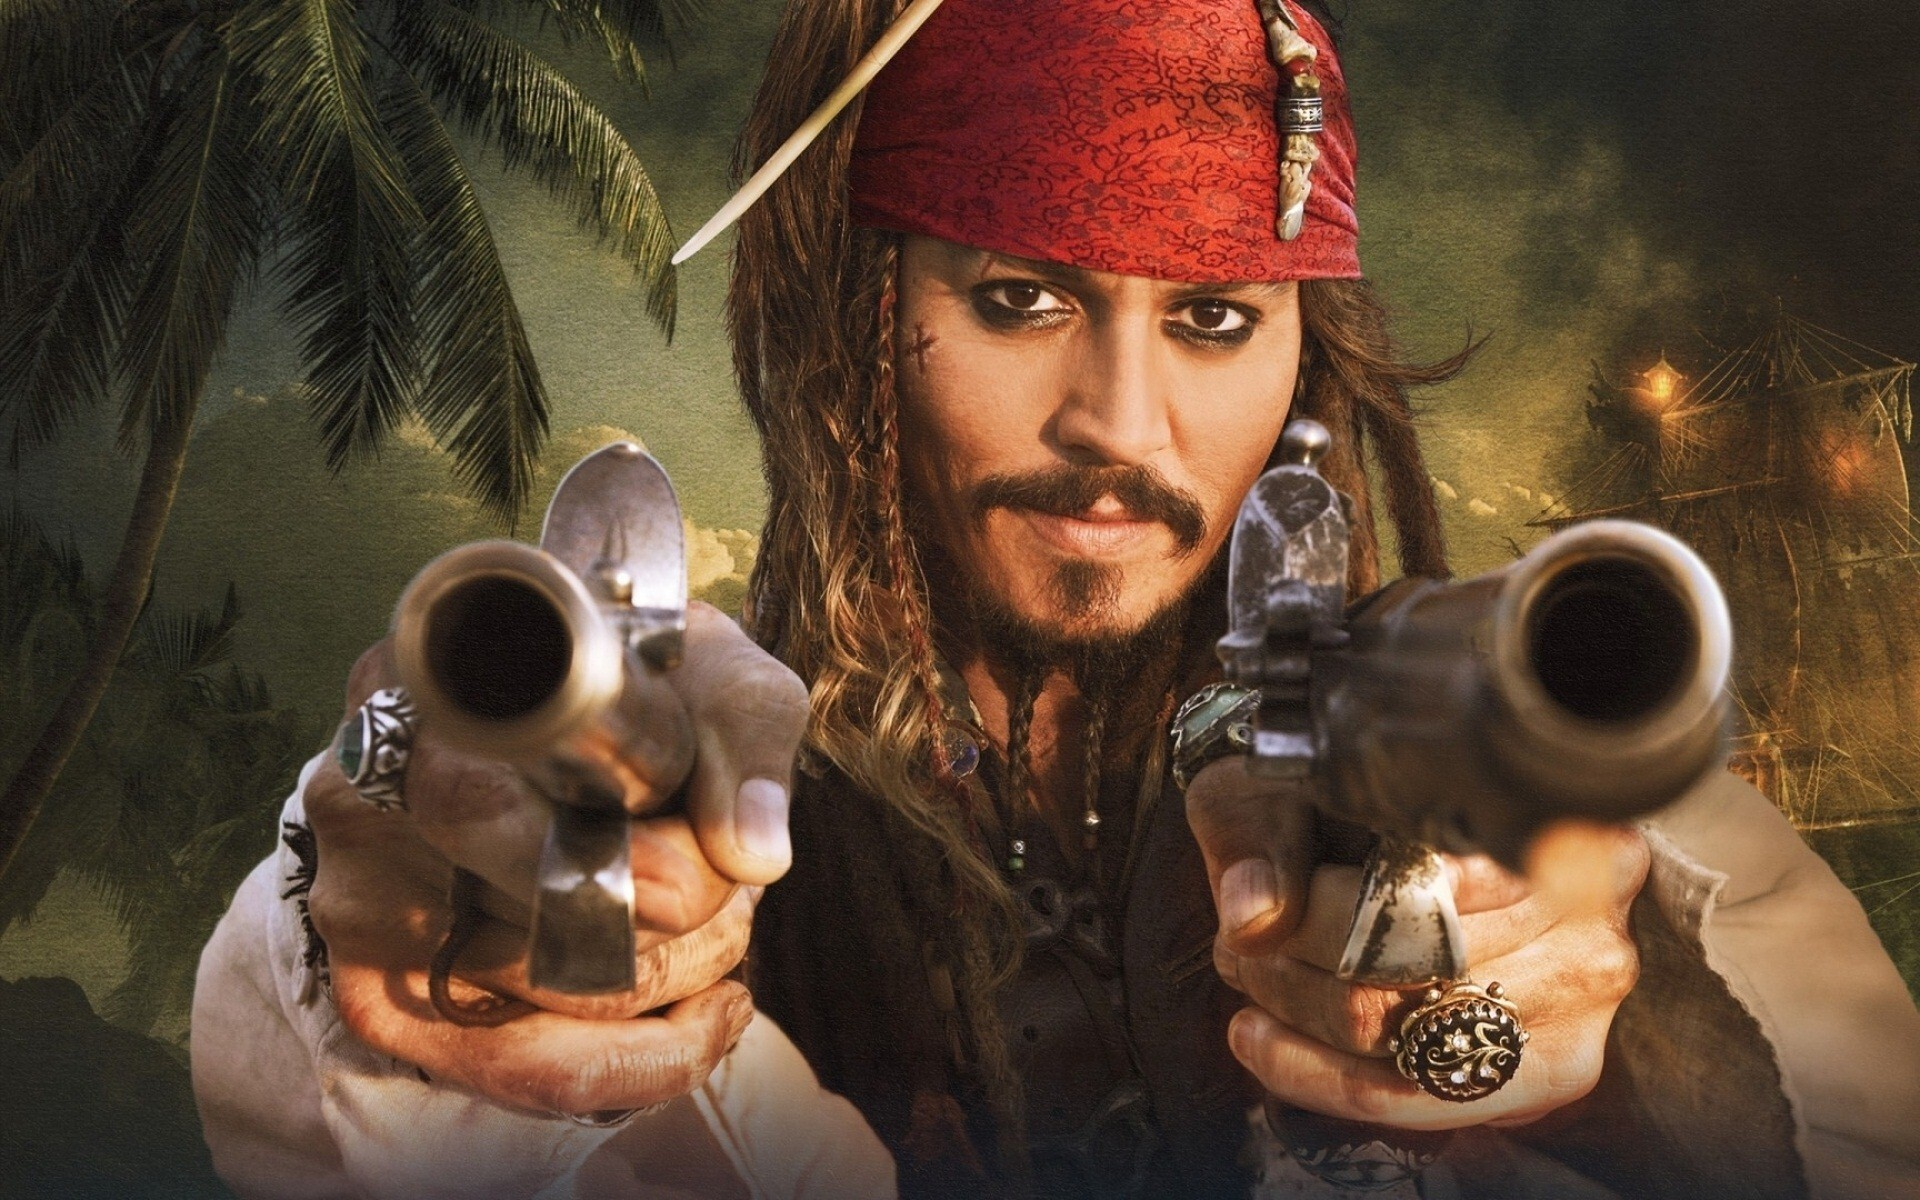 Jack Sparrow Hd Wallpapers Images Pictures Photos Download